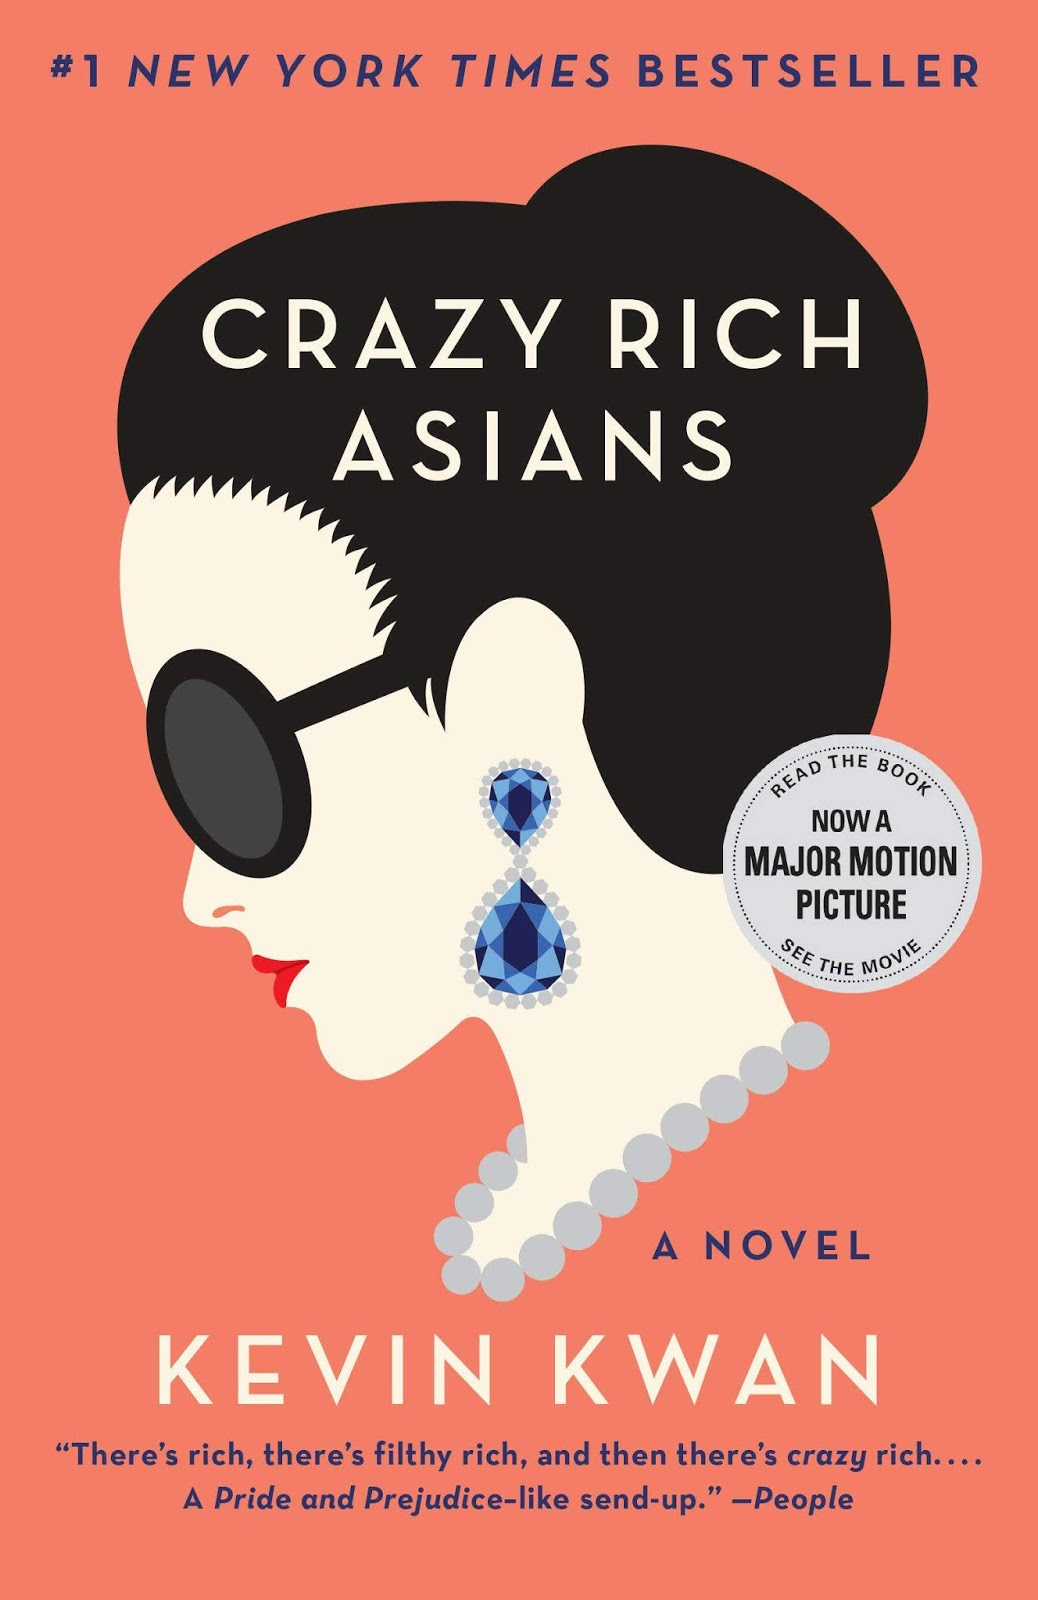 Kevin Kwan - Crazy Rich Asians - Bahasa Indonesia (Half)